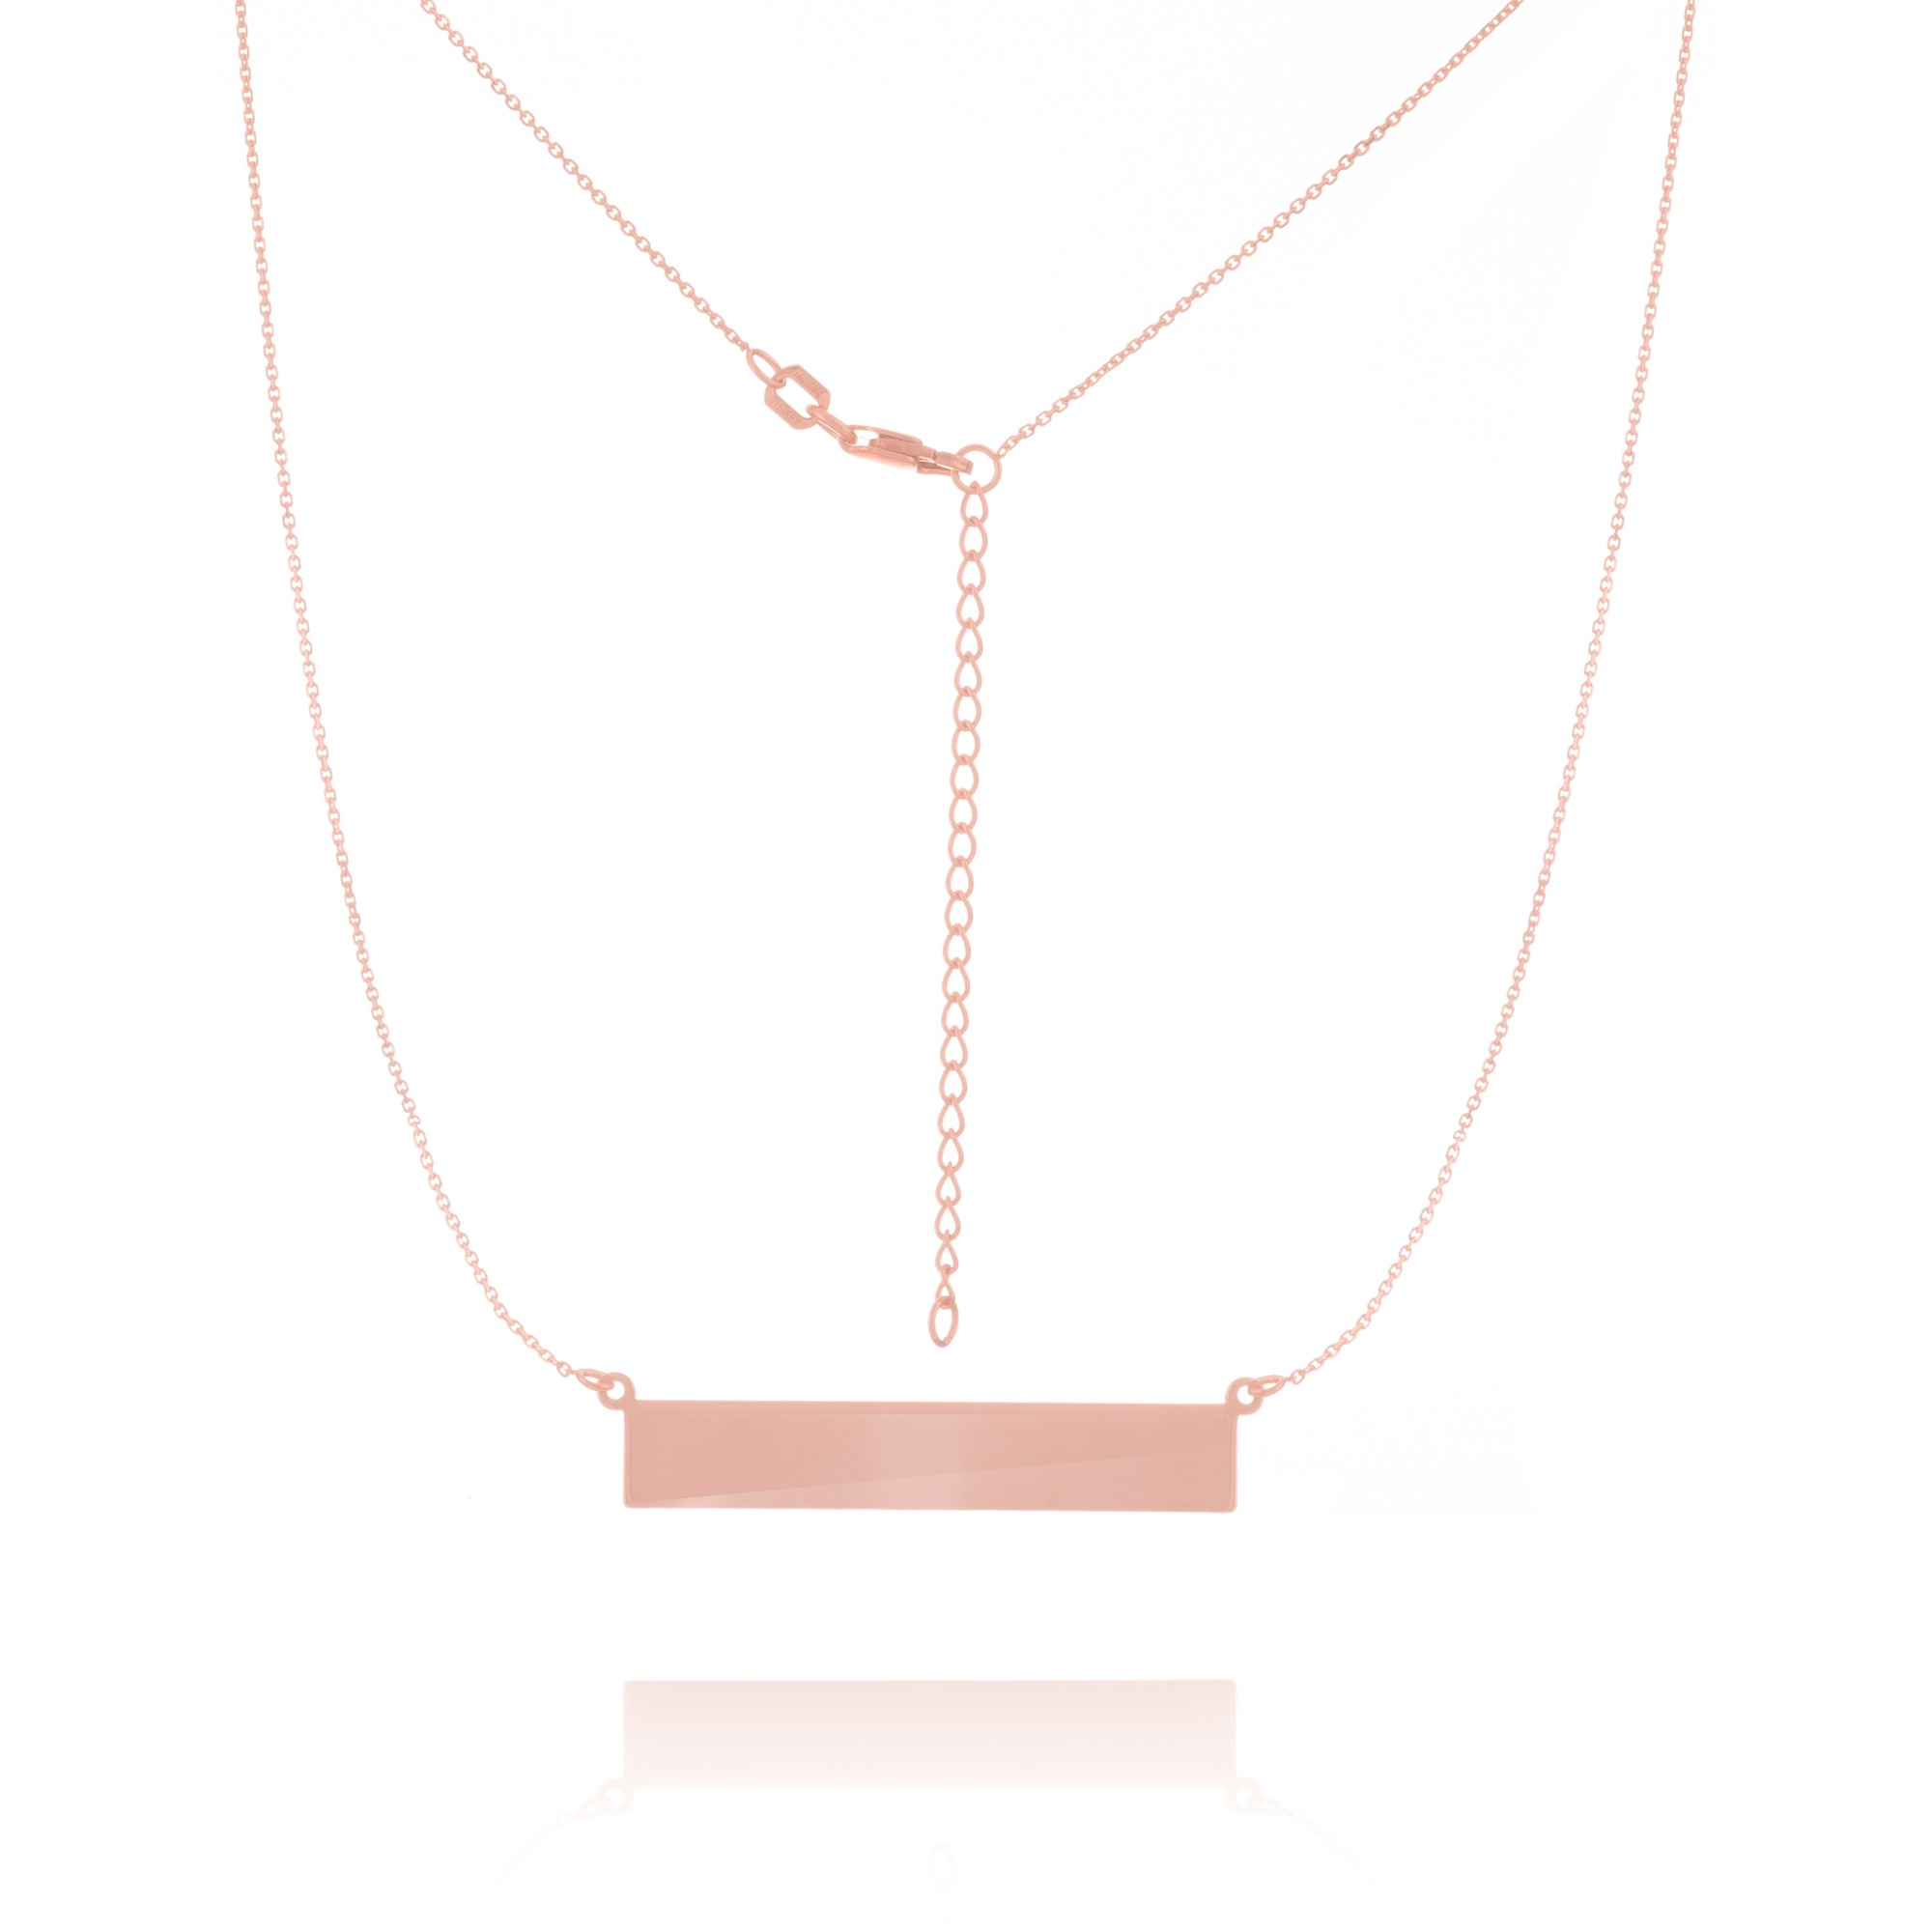 Pendant - Rose Gold 14K Bar Name Plate Pendant